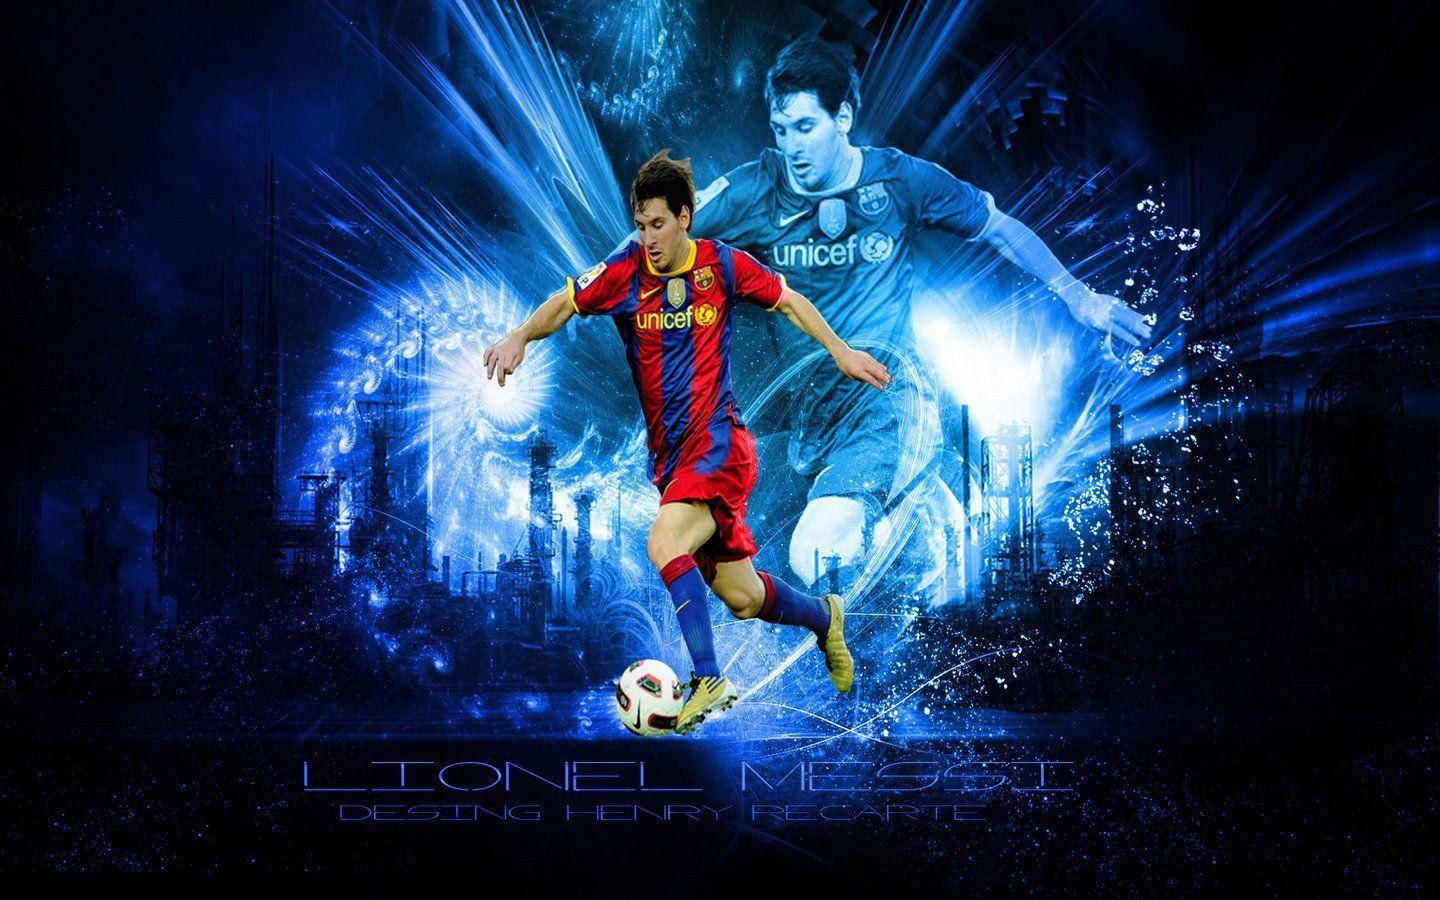 Fcb 2015 Mobile Wallpapers